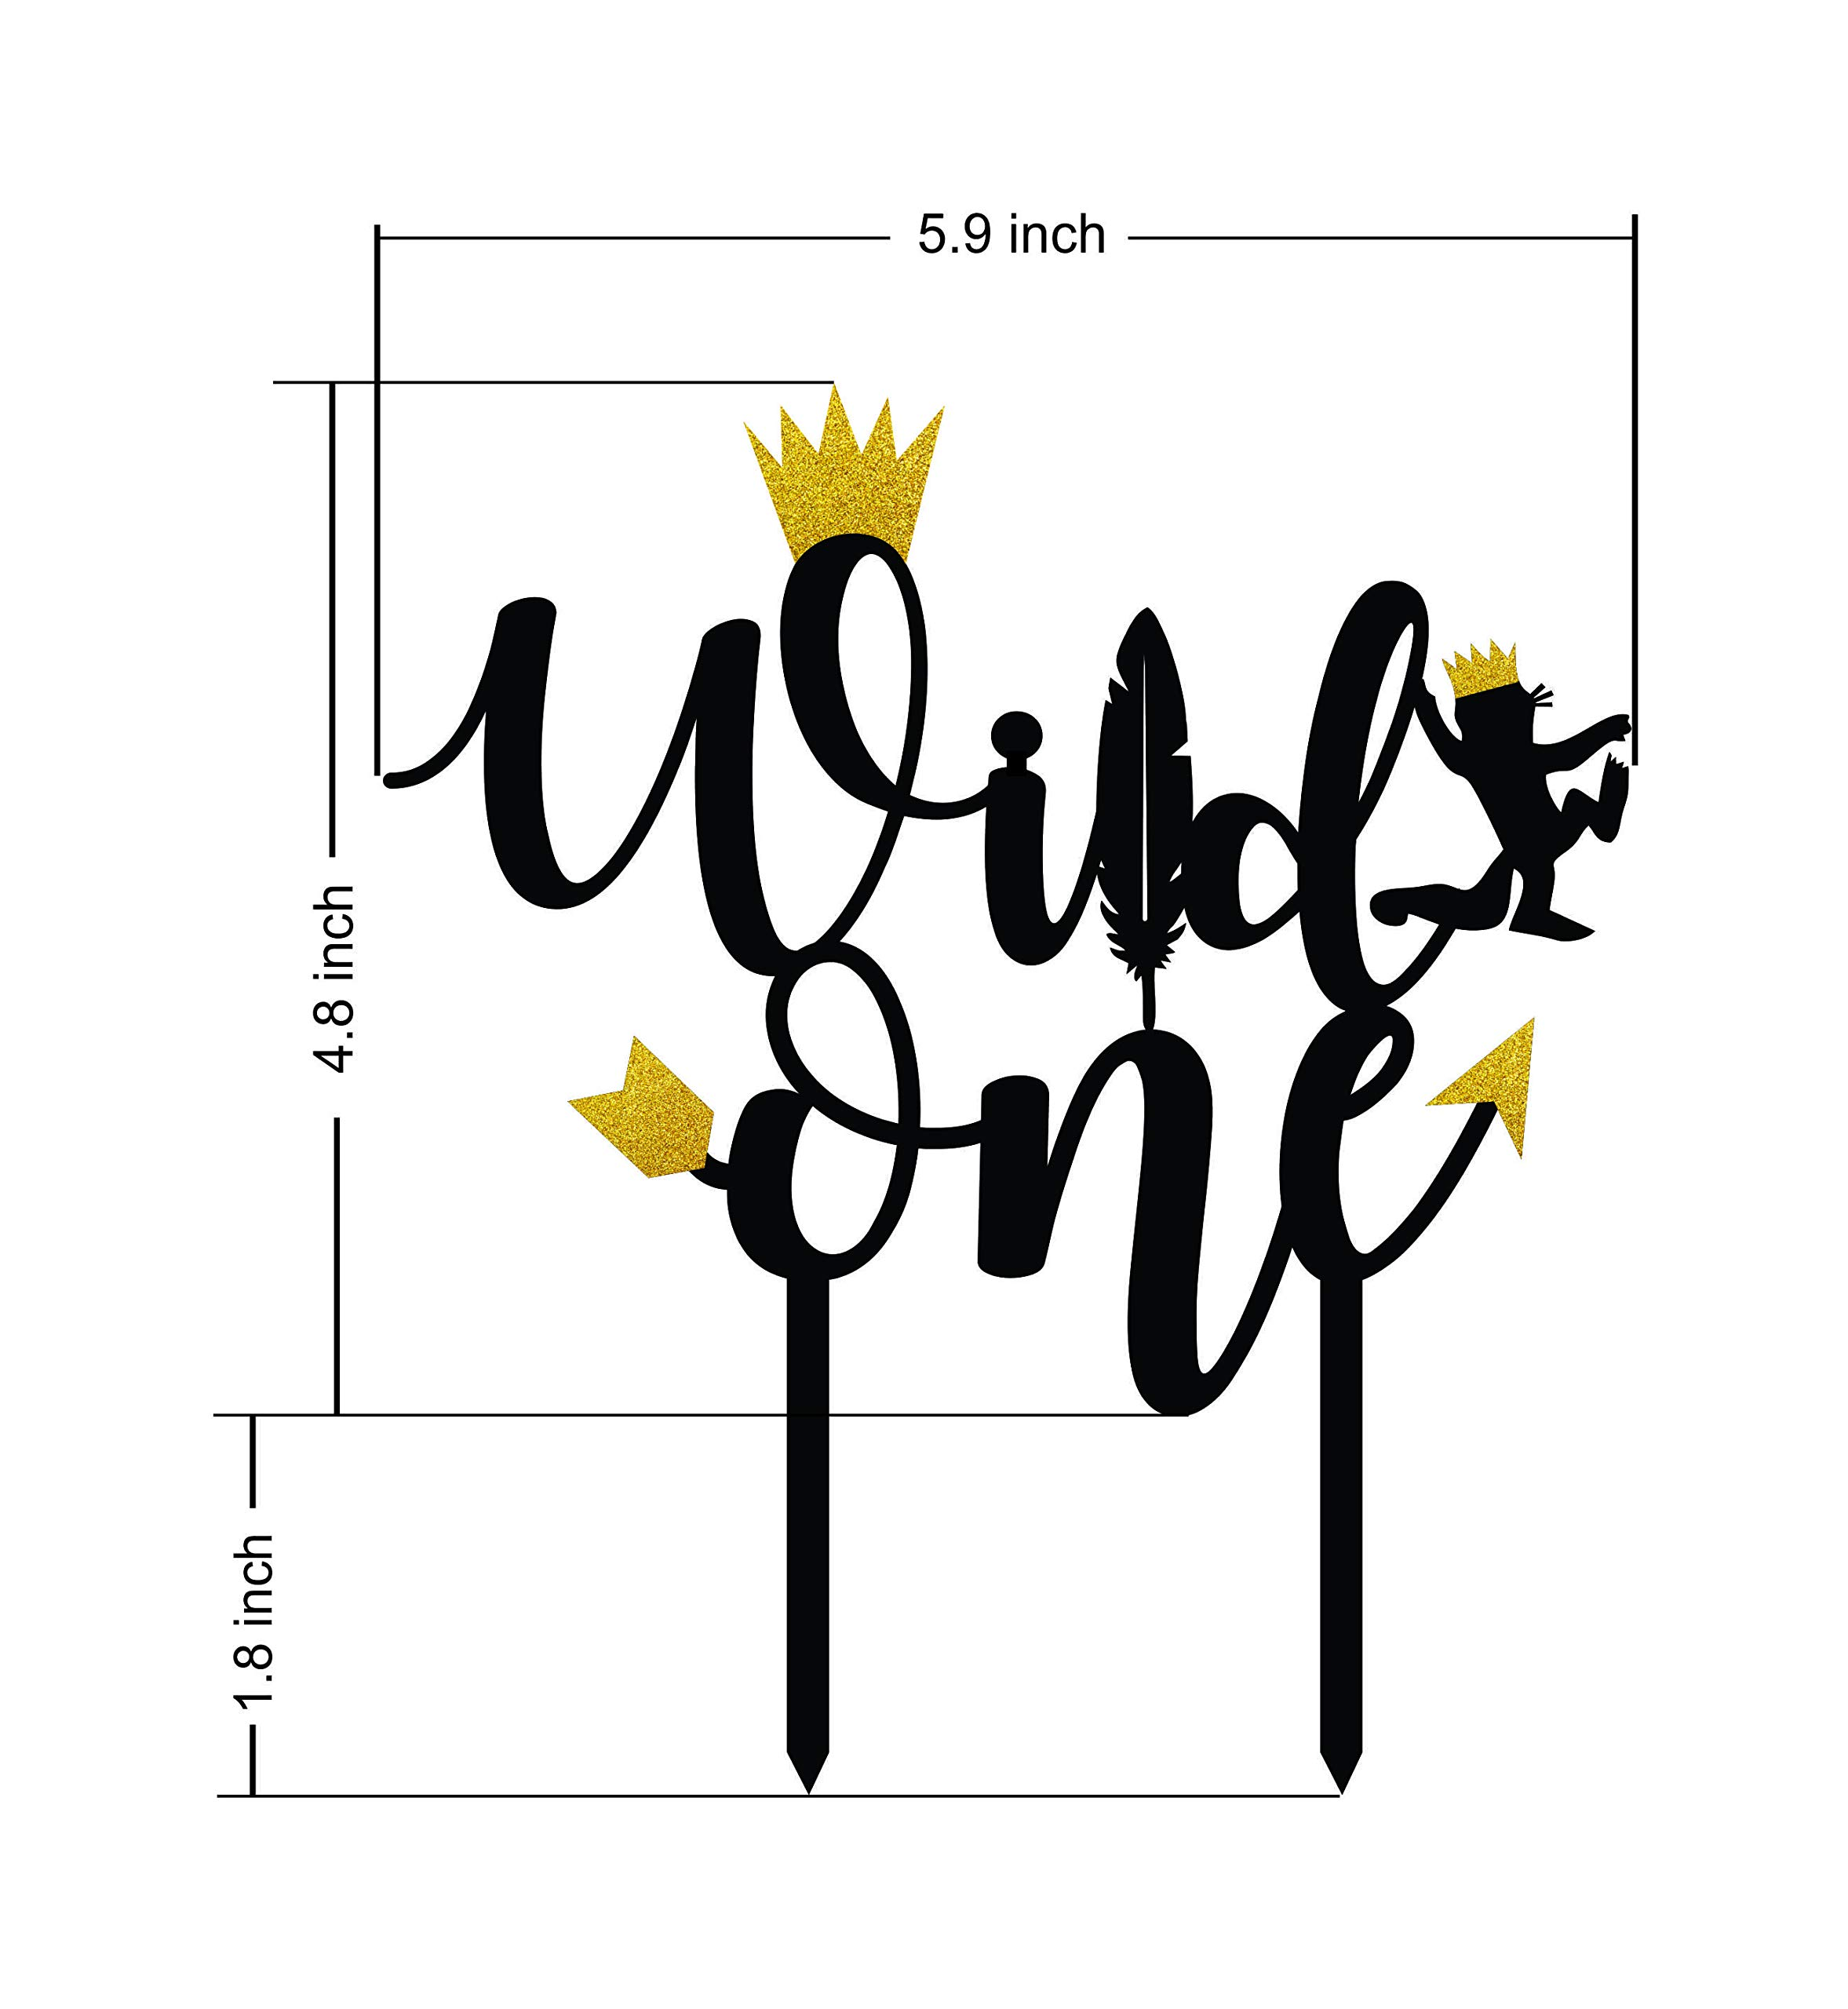 Wild one birthday decorations- Wild one cake topper - Black and Gold Acrylic Monogram Birthday cake toppers Gold glitter by OrangeDolly (Image #3)